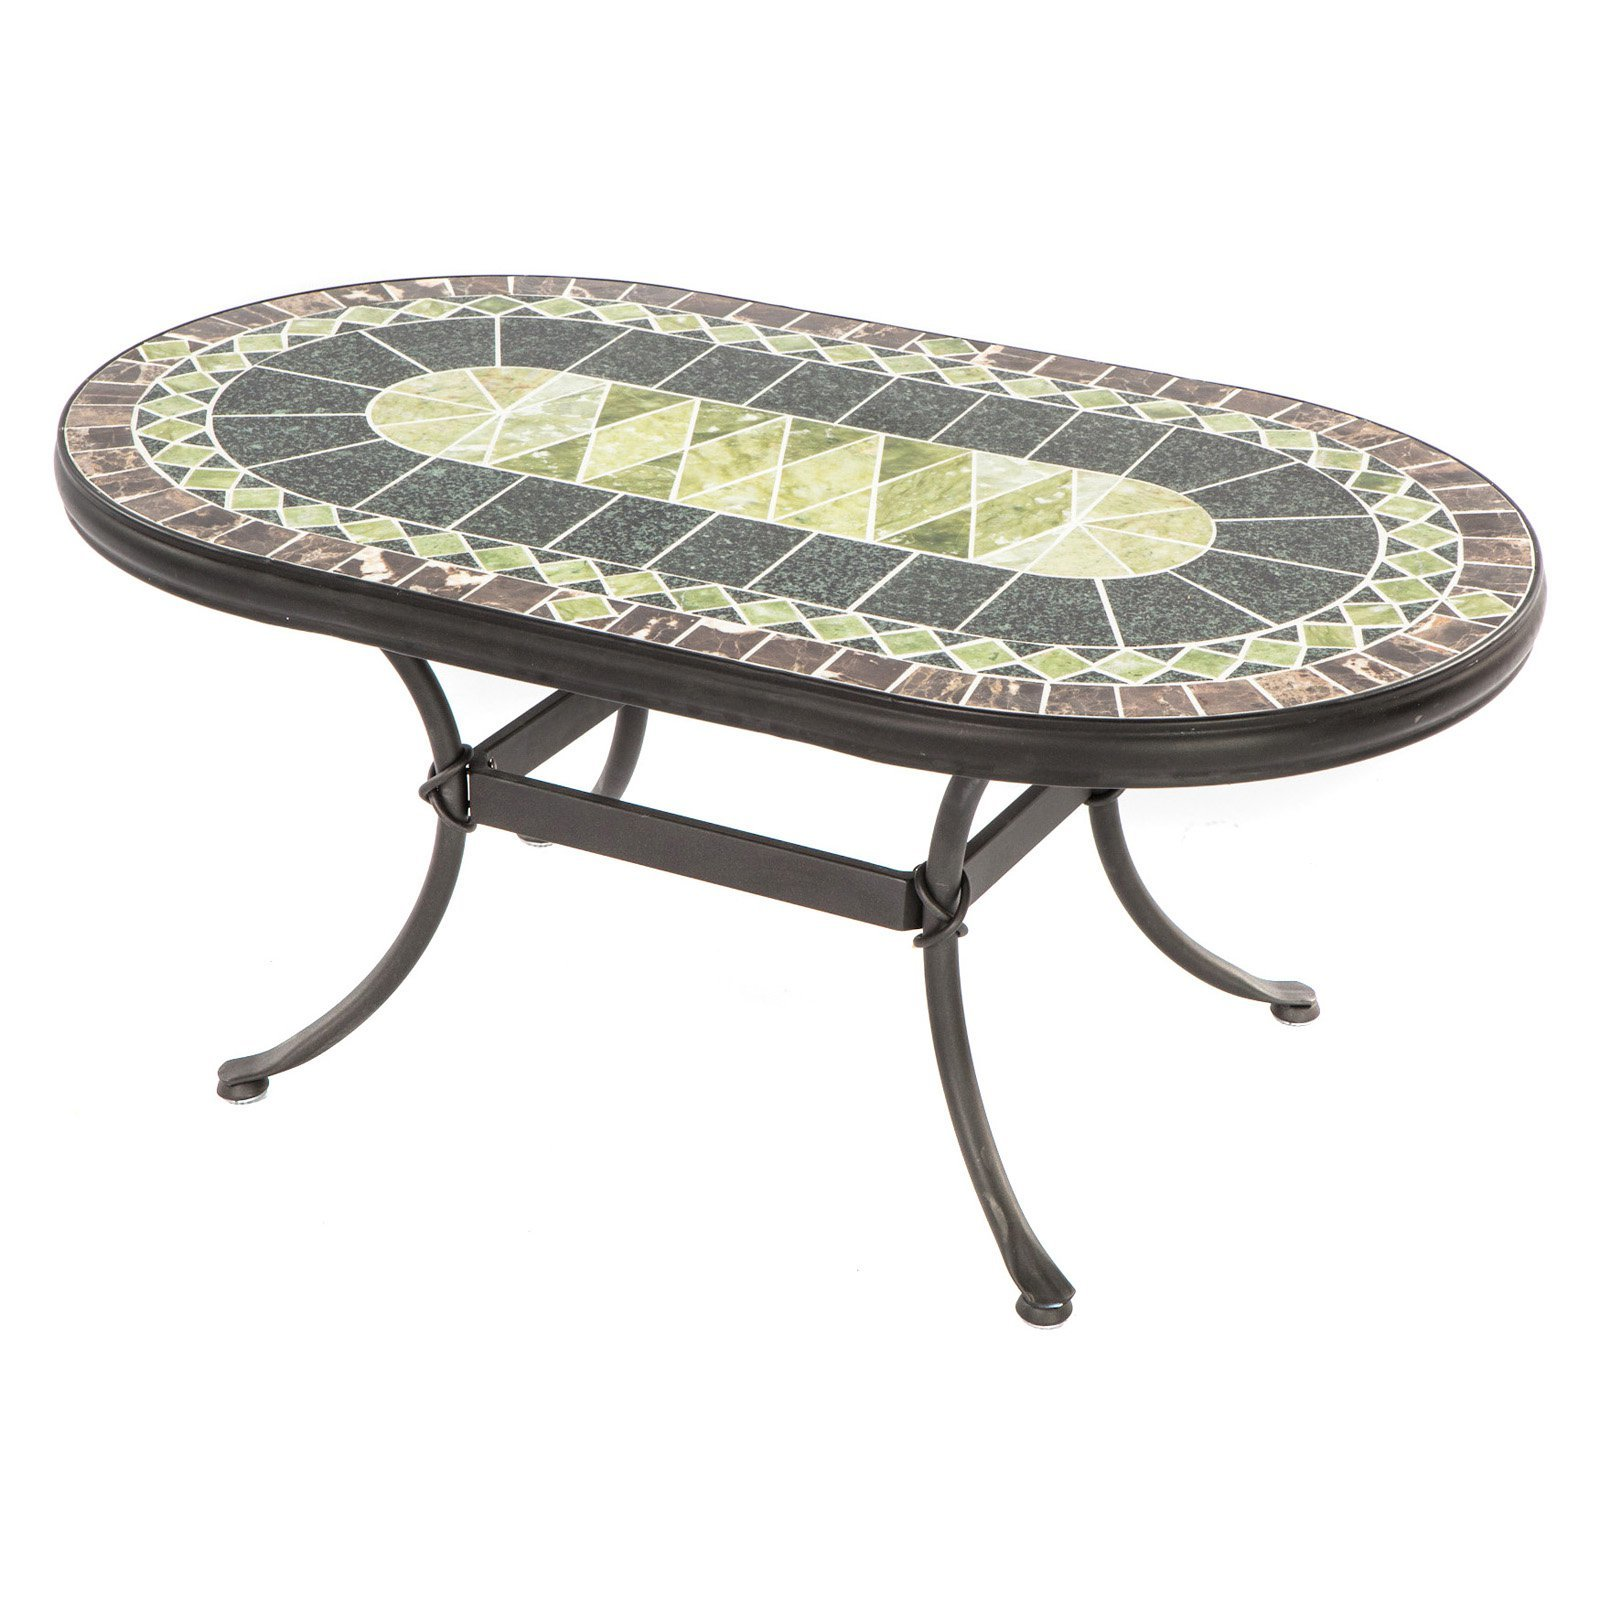 likable unique patio accent tables umbrella home restaurant table kitchen set for chairs hexagon and side sears furniture living outdoor depot conversation clearance sets cover